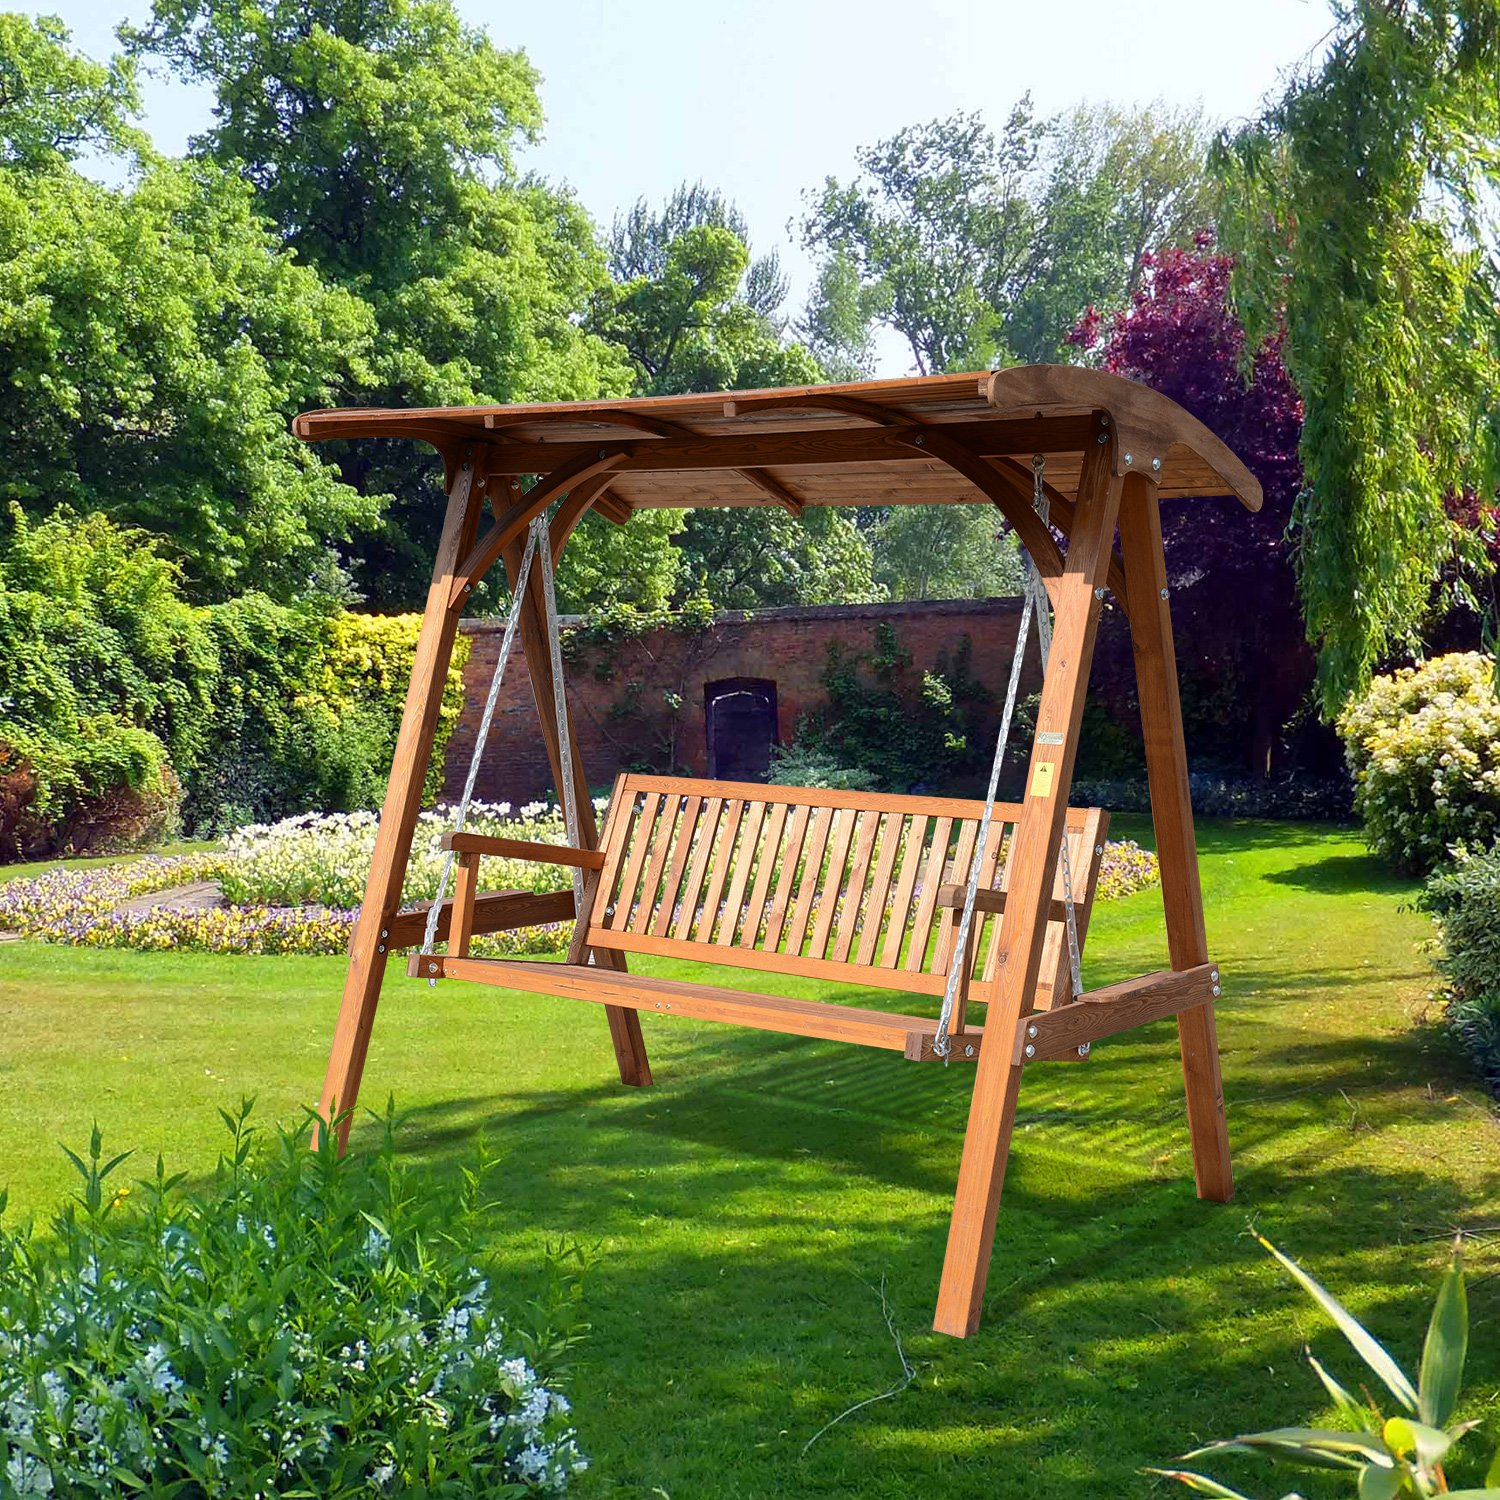 Outsunny 3 Seater Larch Wood Wooden Garden Swing Chair Seat Hammock Bench Lounger Wood Amazon.co.uk Garden u0026 Outdoors & Outsunny 3 Seater Larch Wood Wooden Garden Swing Chair Seat ...